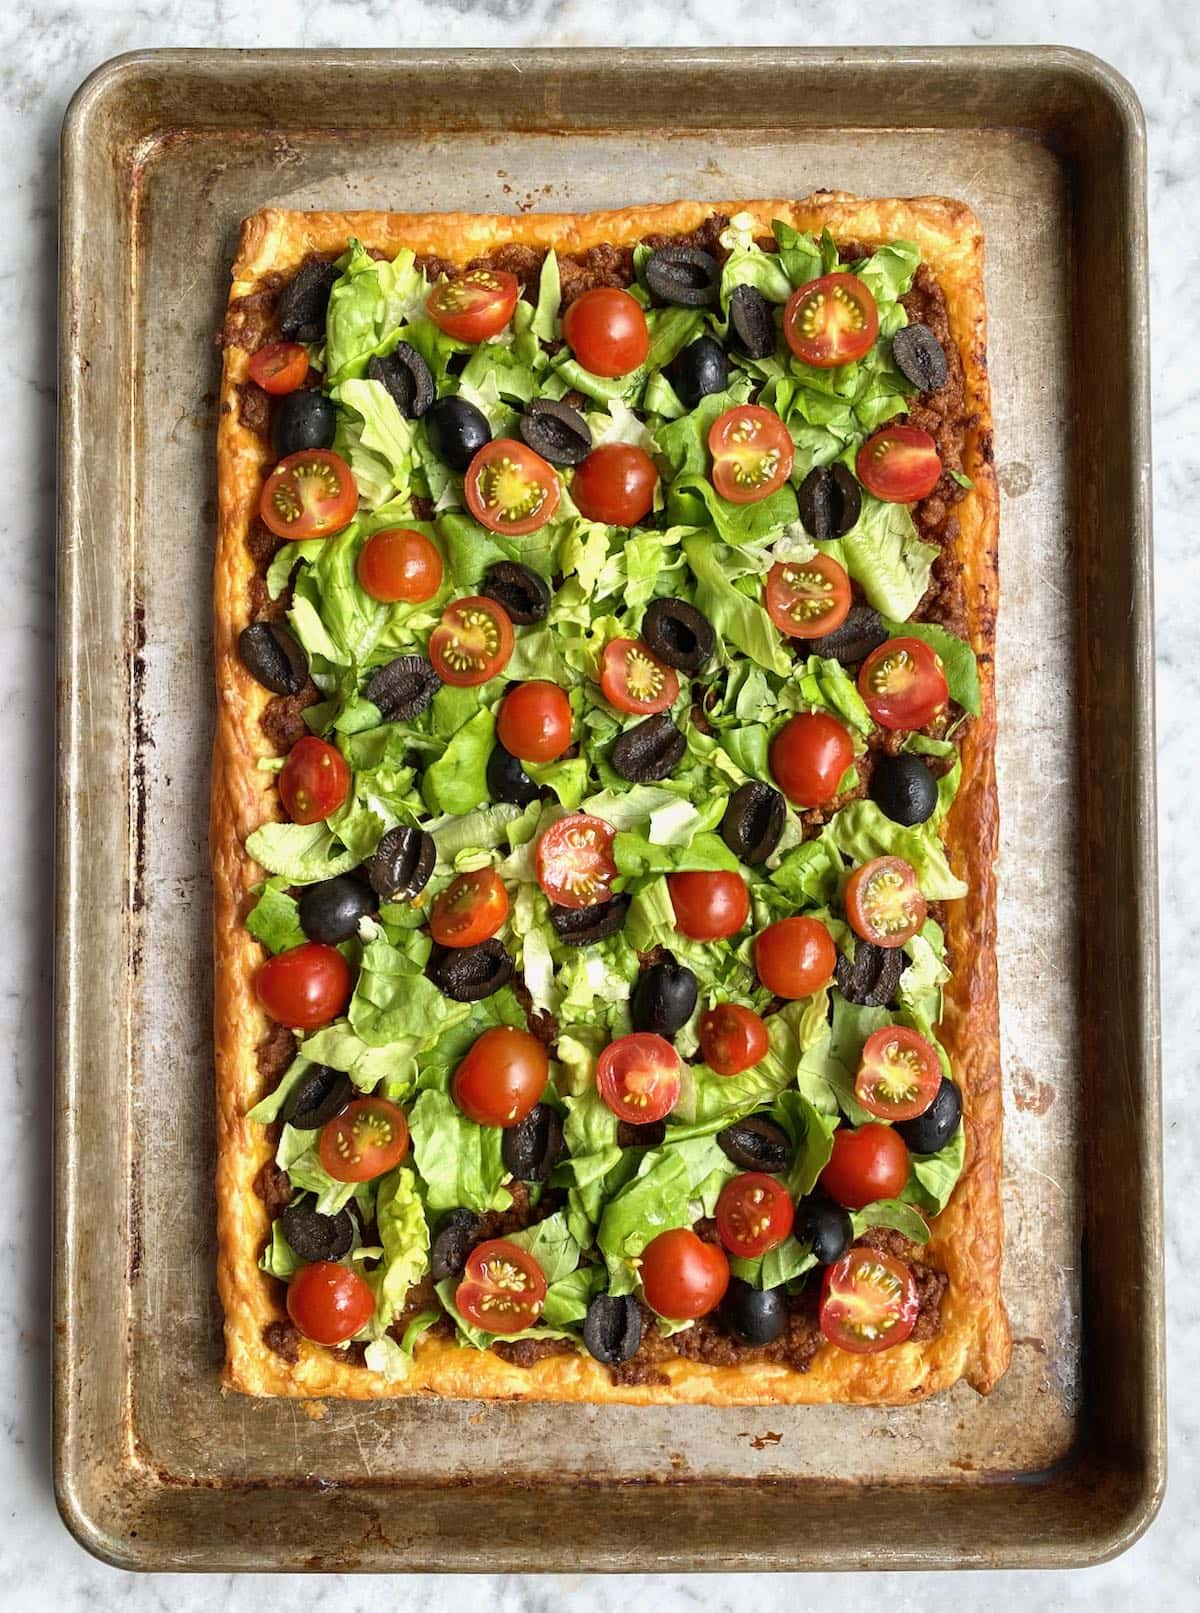 sheet of puff pastry topped with lettuce, tomatoes and olives